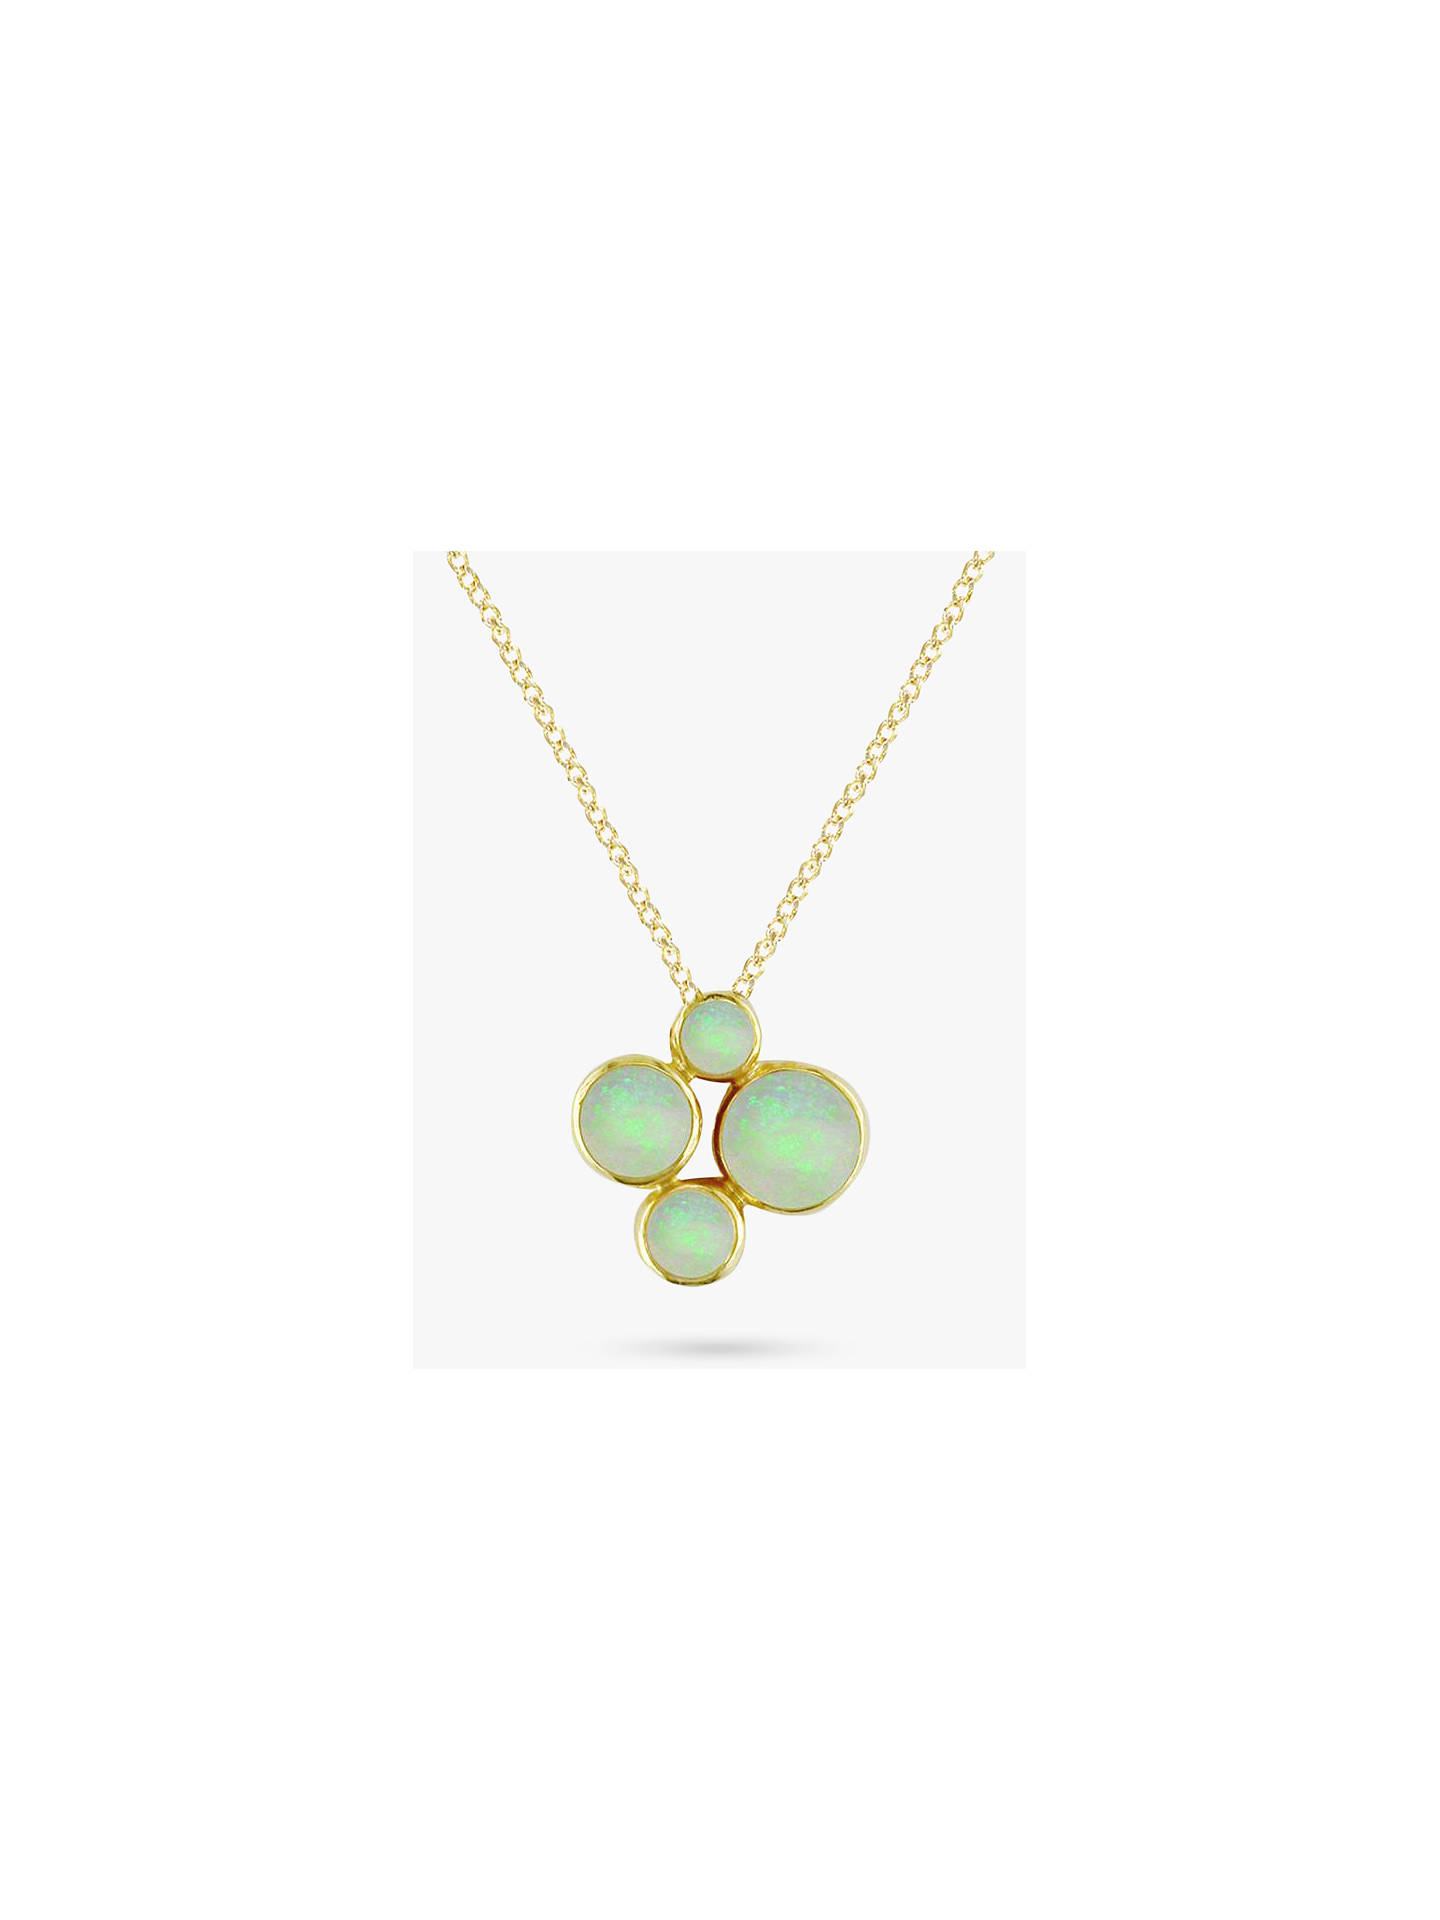 8d45082dd25 Buy E.W Adams 9ct Yellow Gold 4 Stone Pendant Necklace, Opal Online at  johnlewis.